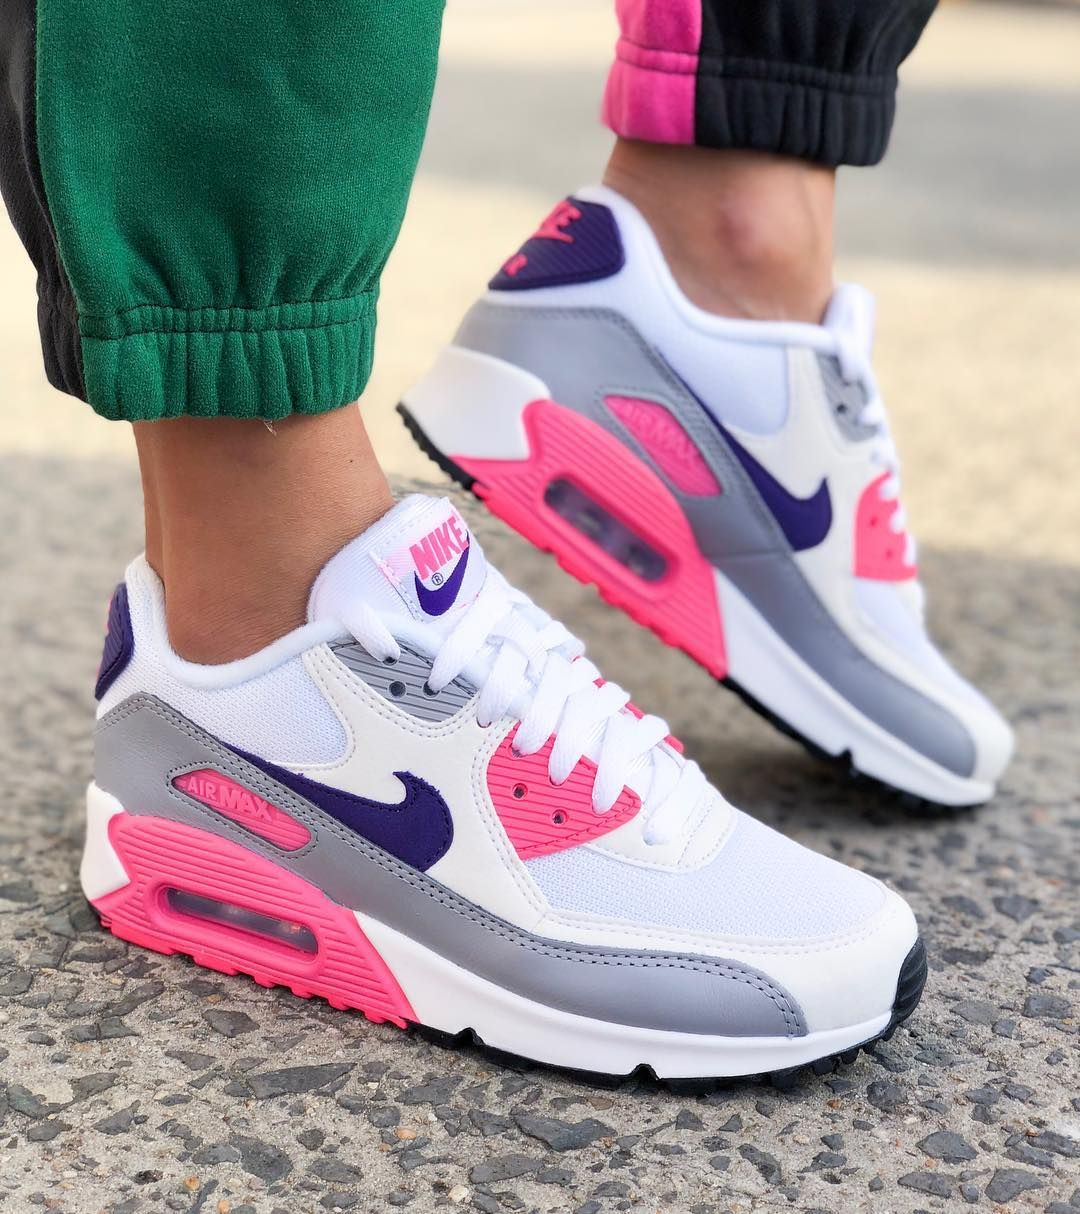 Nike Air Max 90 White Purple Grey Pink | Skor